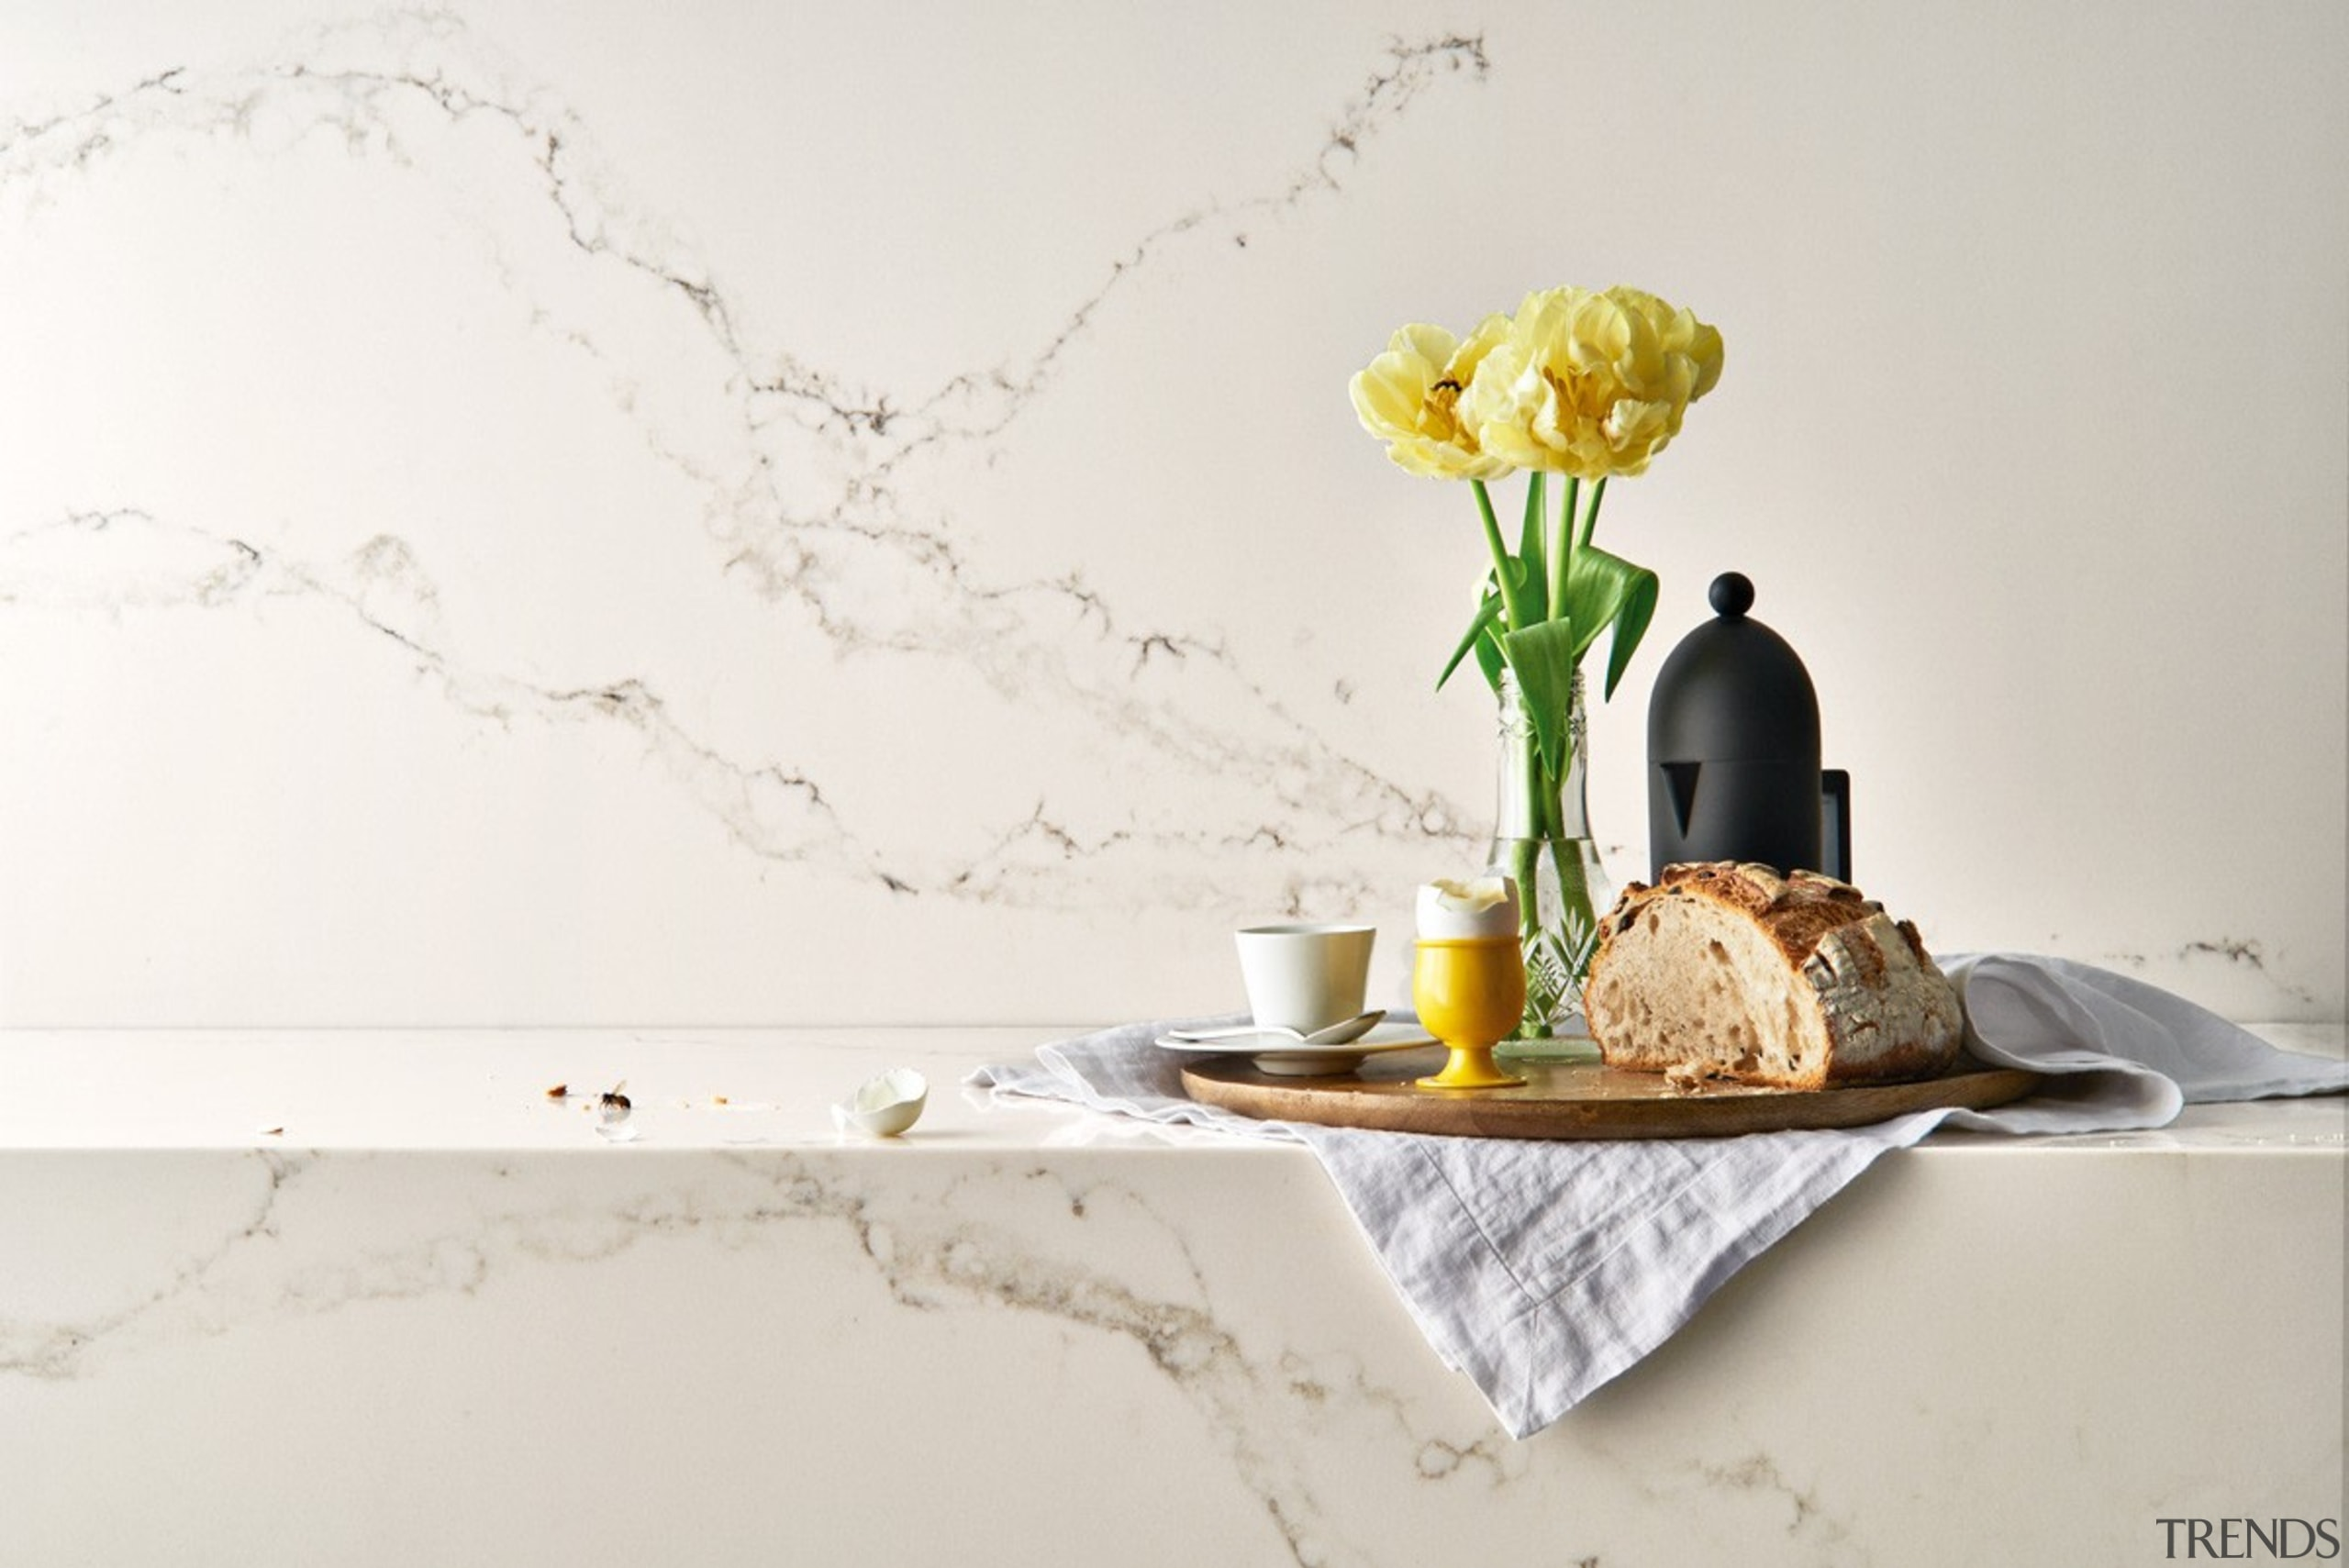 Caesarstone's interpretation of Statuario marble; Statuario Nuvo brings interior design, product design, still life photography, table, vase, yellow, white